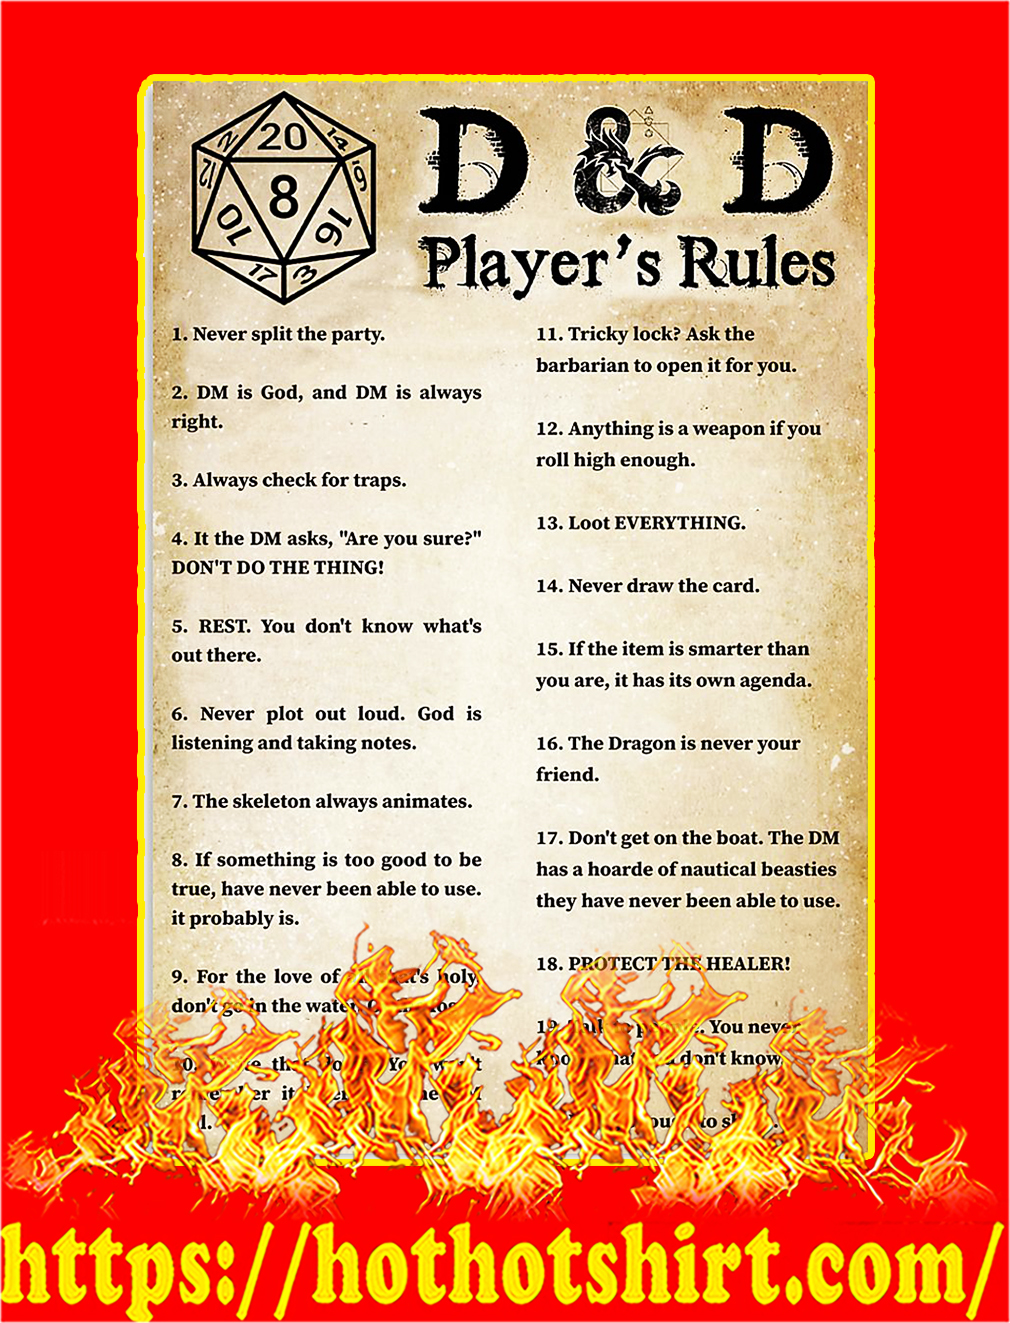 D&D player's rules poster - A4